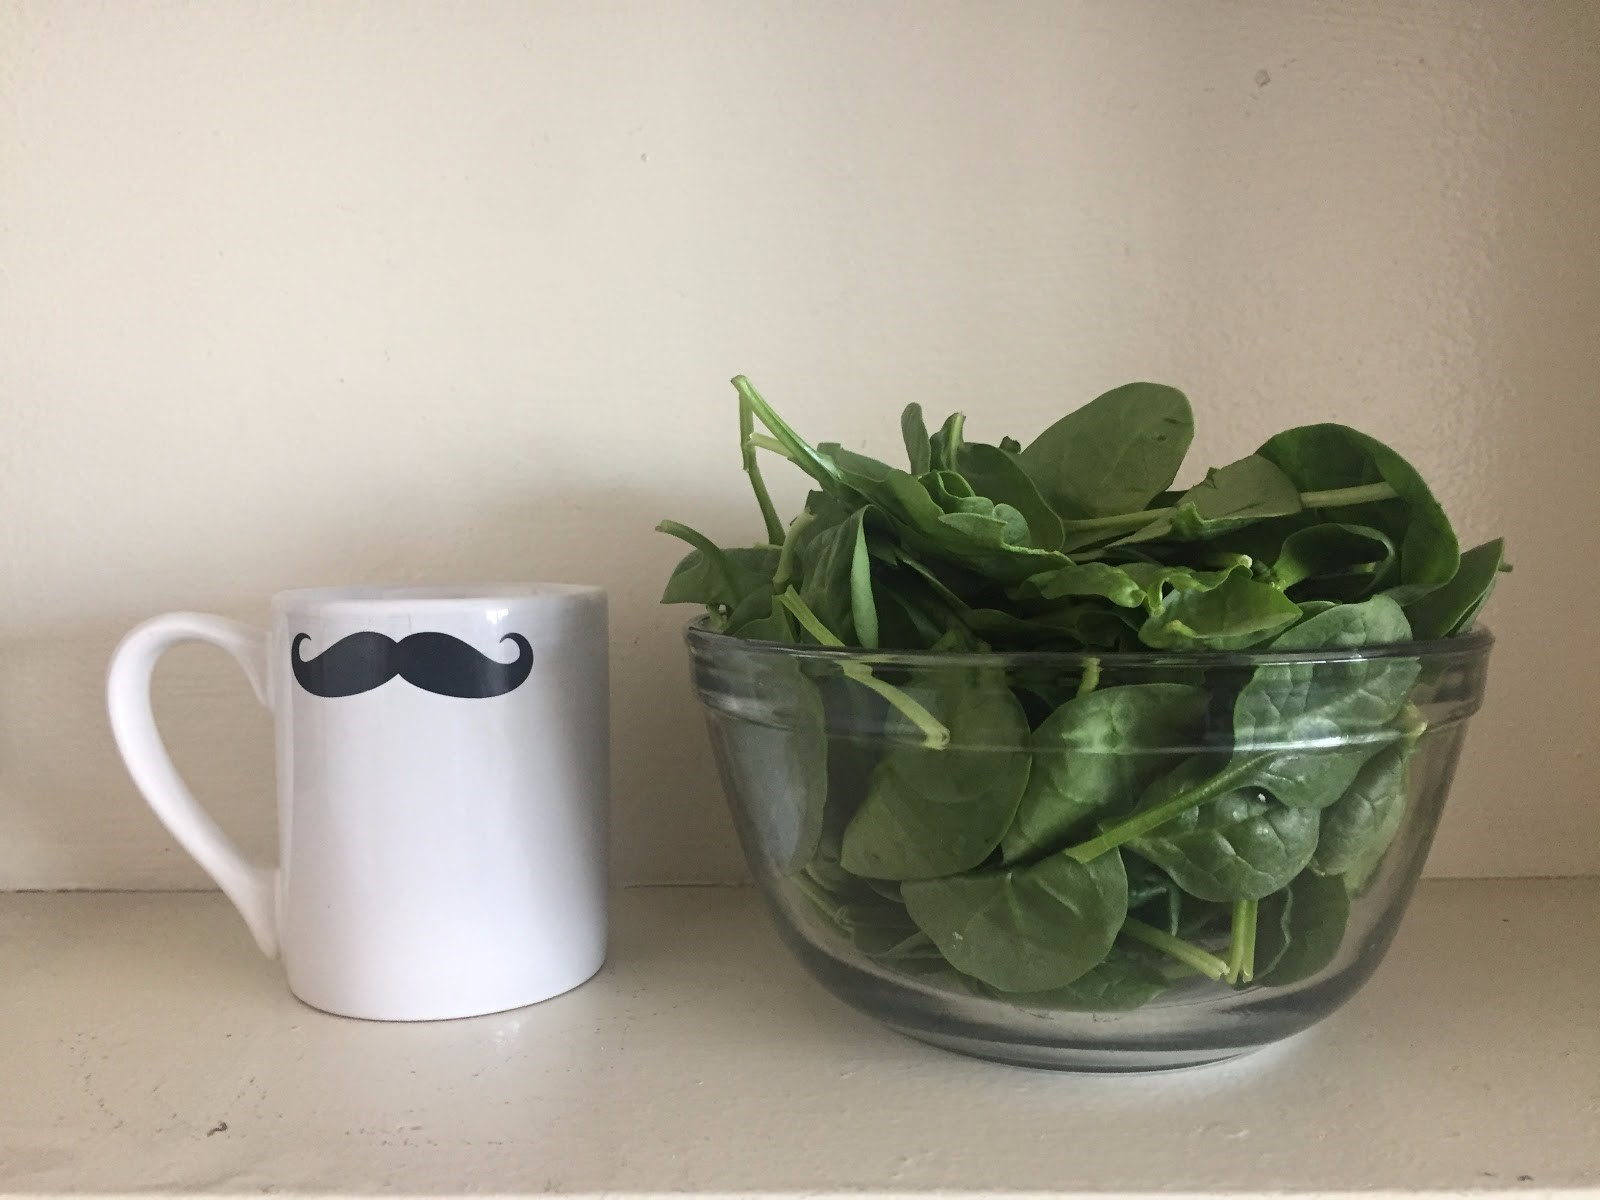 5 oz of spinach